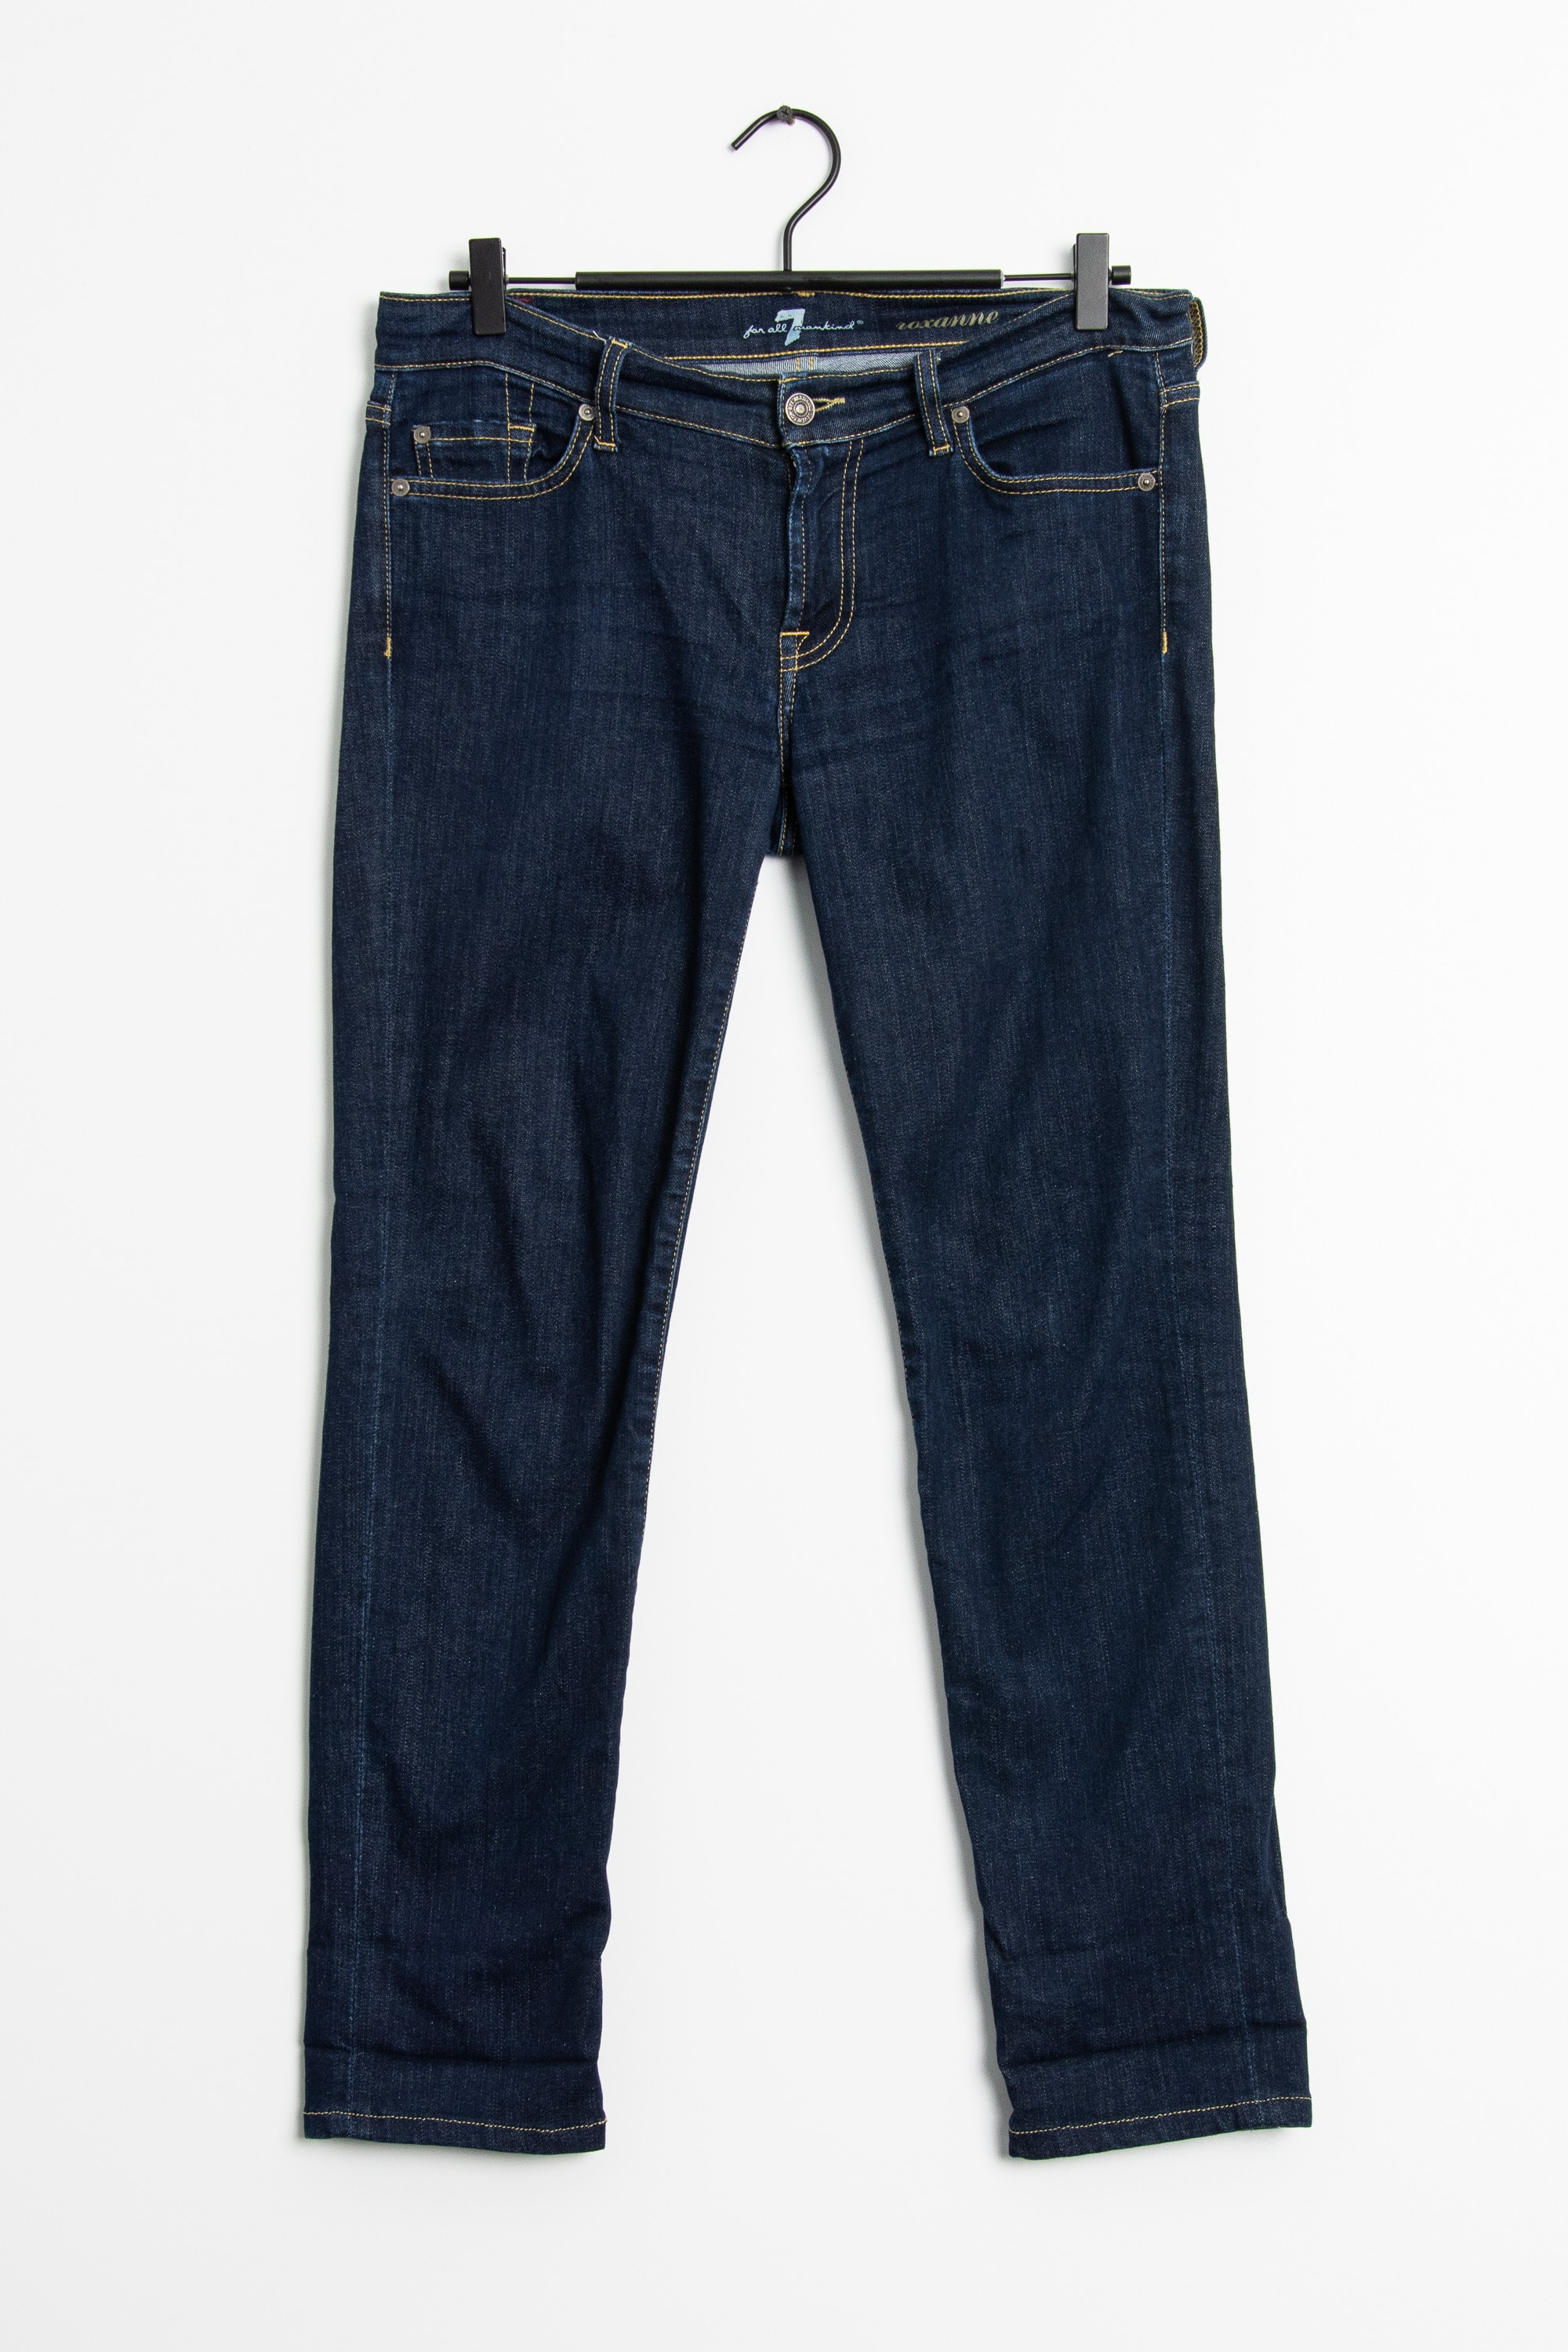 7 for all mankind Jeans Blau Gr.L